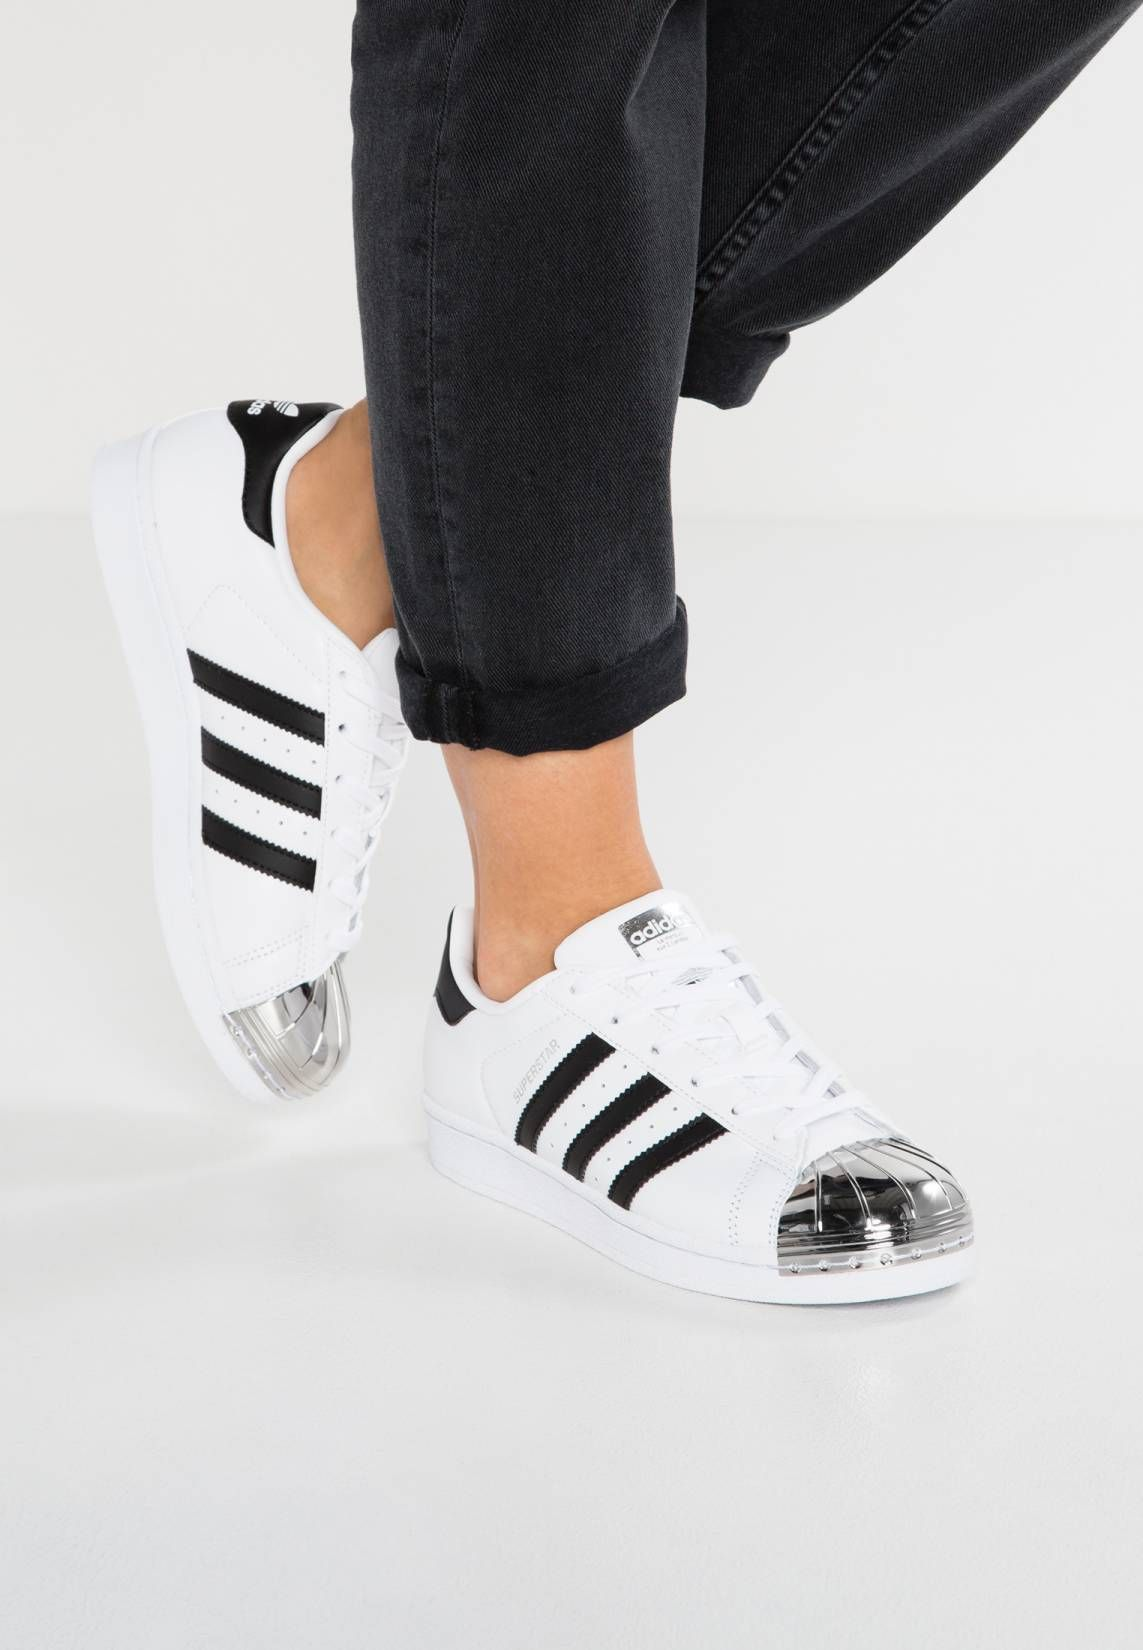 sports shoes c7e3c 75732 adidas Originals. SUPERSTAR - Baskets basses - whitecore blacksilver  metallic. Baskets Coloré zalando FR fashion Semelle de propretétextile.